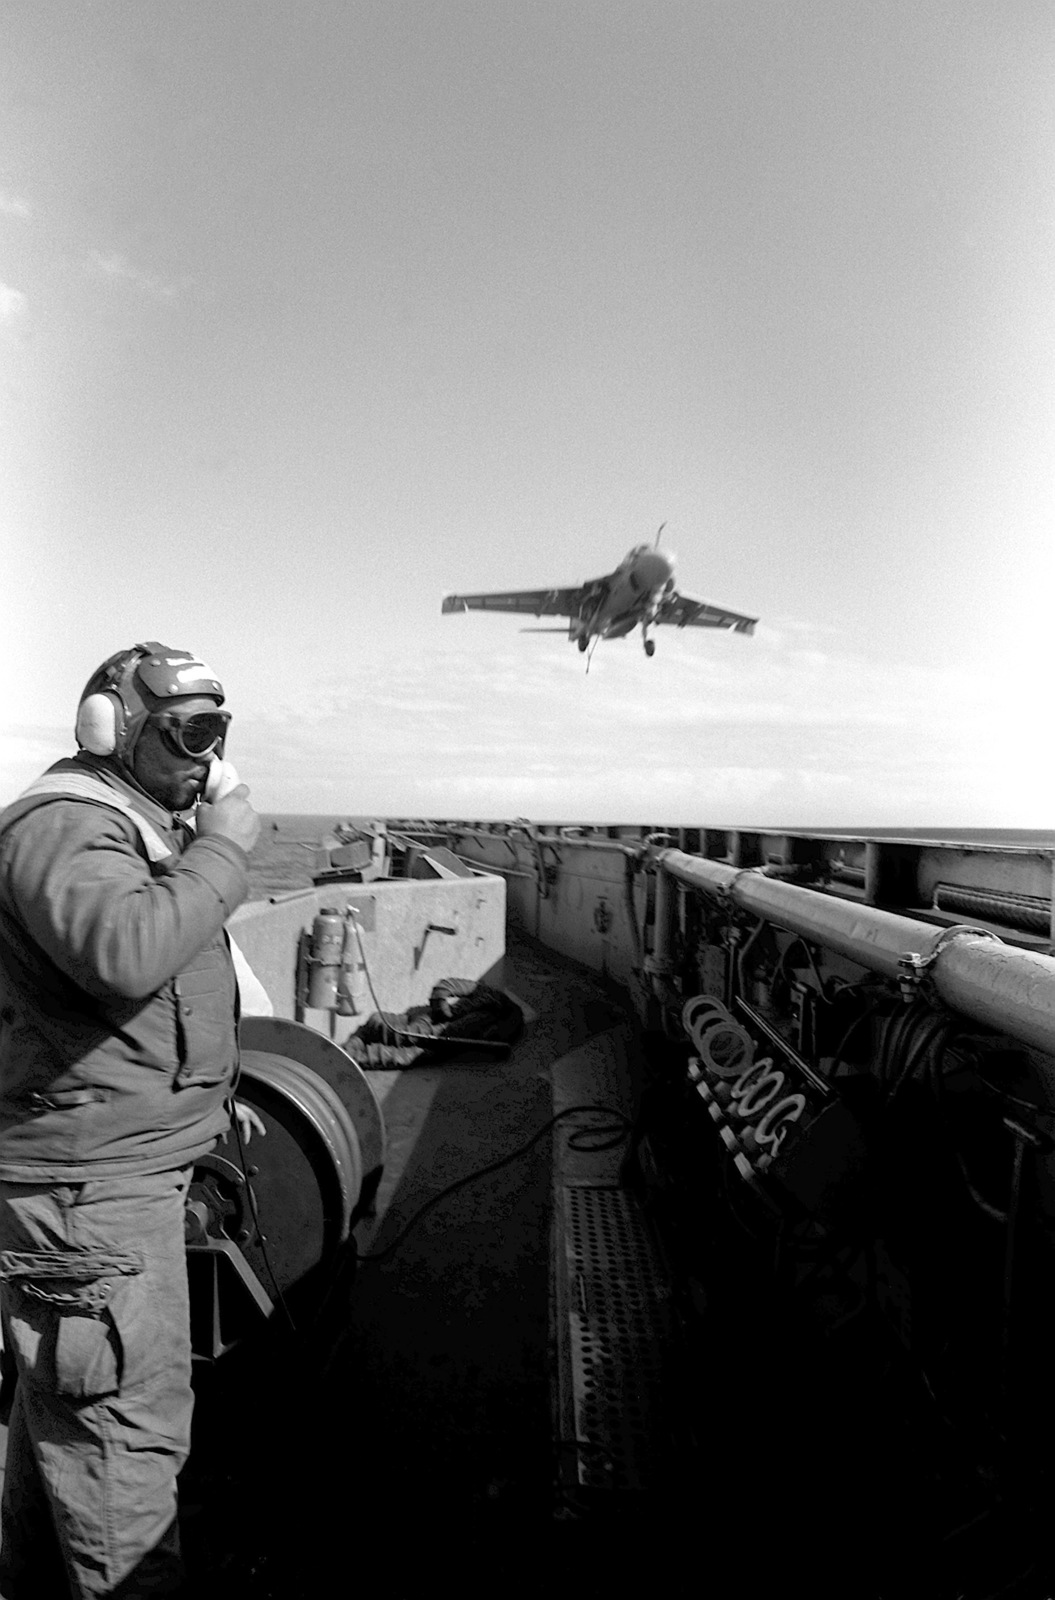 A flight deck crew member watches as an Attack Squadron 75 (VA-75) A-6E Intruder aircraft prepares to touch down on the flight deck of the aircraft carrier USS JOHN F. KENNEDY (CV-67) during flight operations aboard the vessel